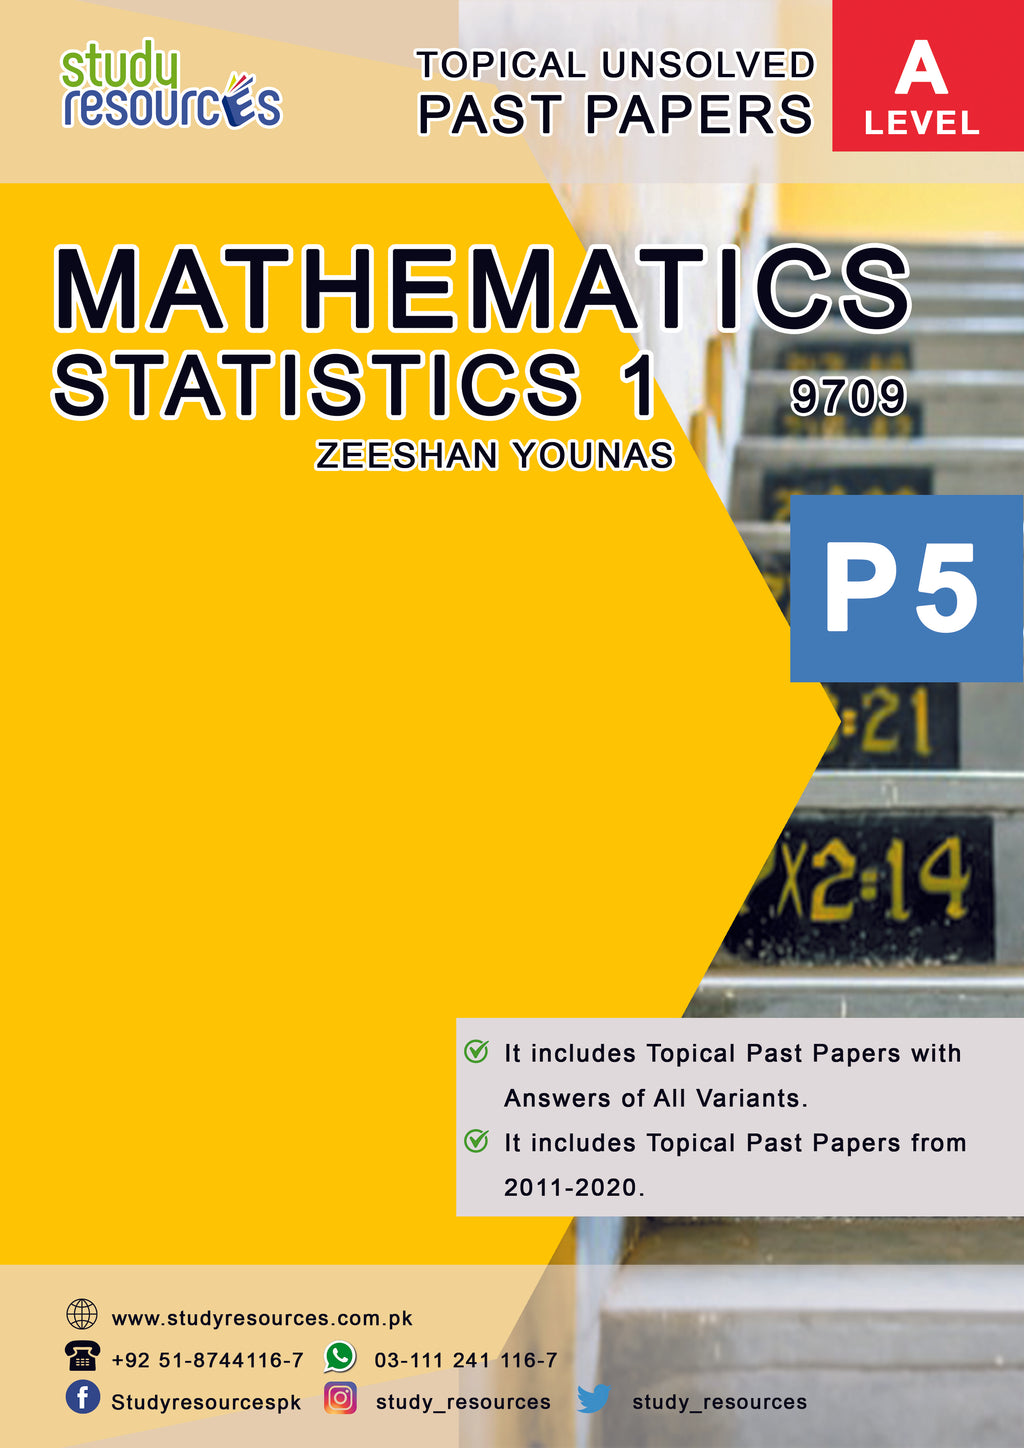 Cambridge A-Level Mathematics (9709) (P5) Statistics-1 Topical Past Papers (2011-2019) By Sir. Zeeshan Younas